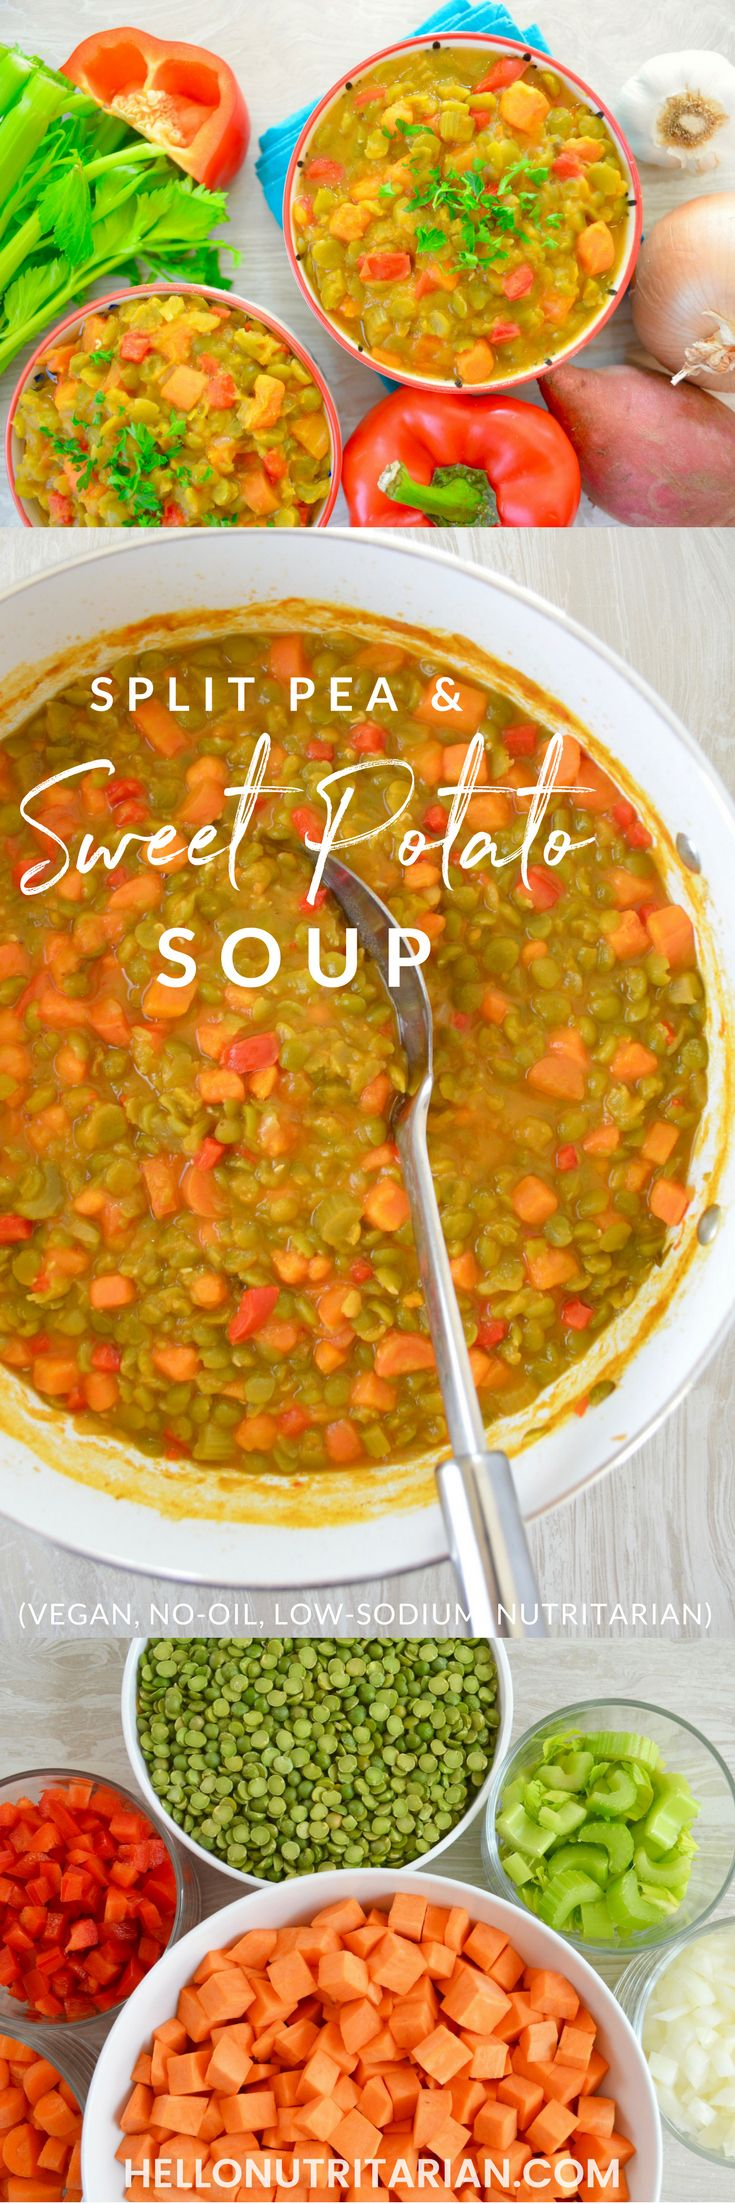 Sweet Potato & Split Pea Vegan Soup Recipe - Whole Food Plant Based